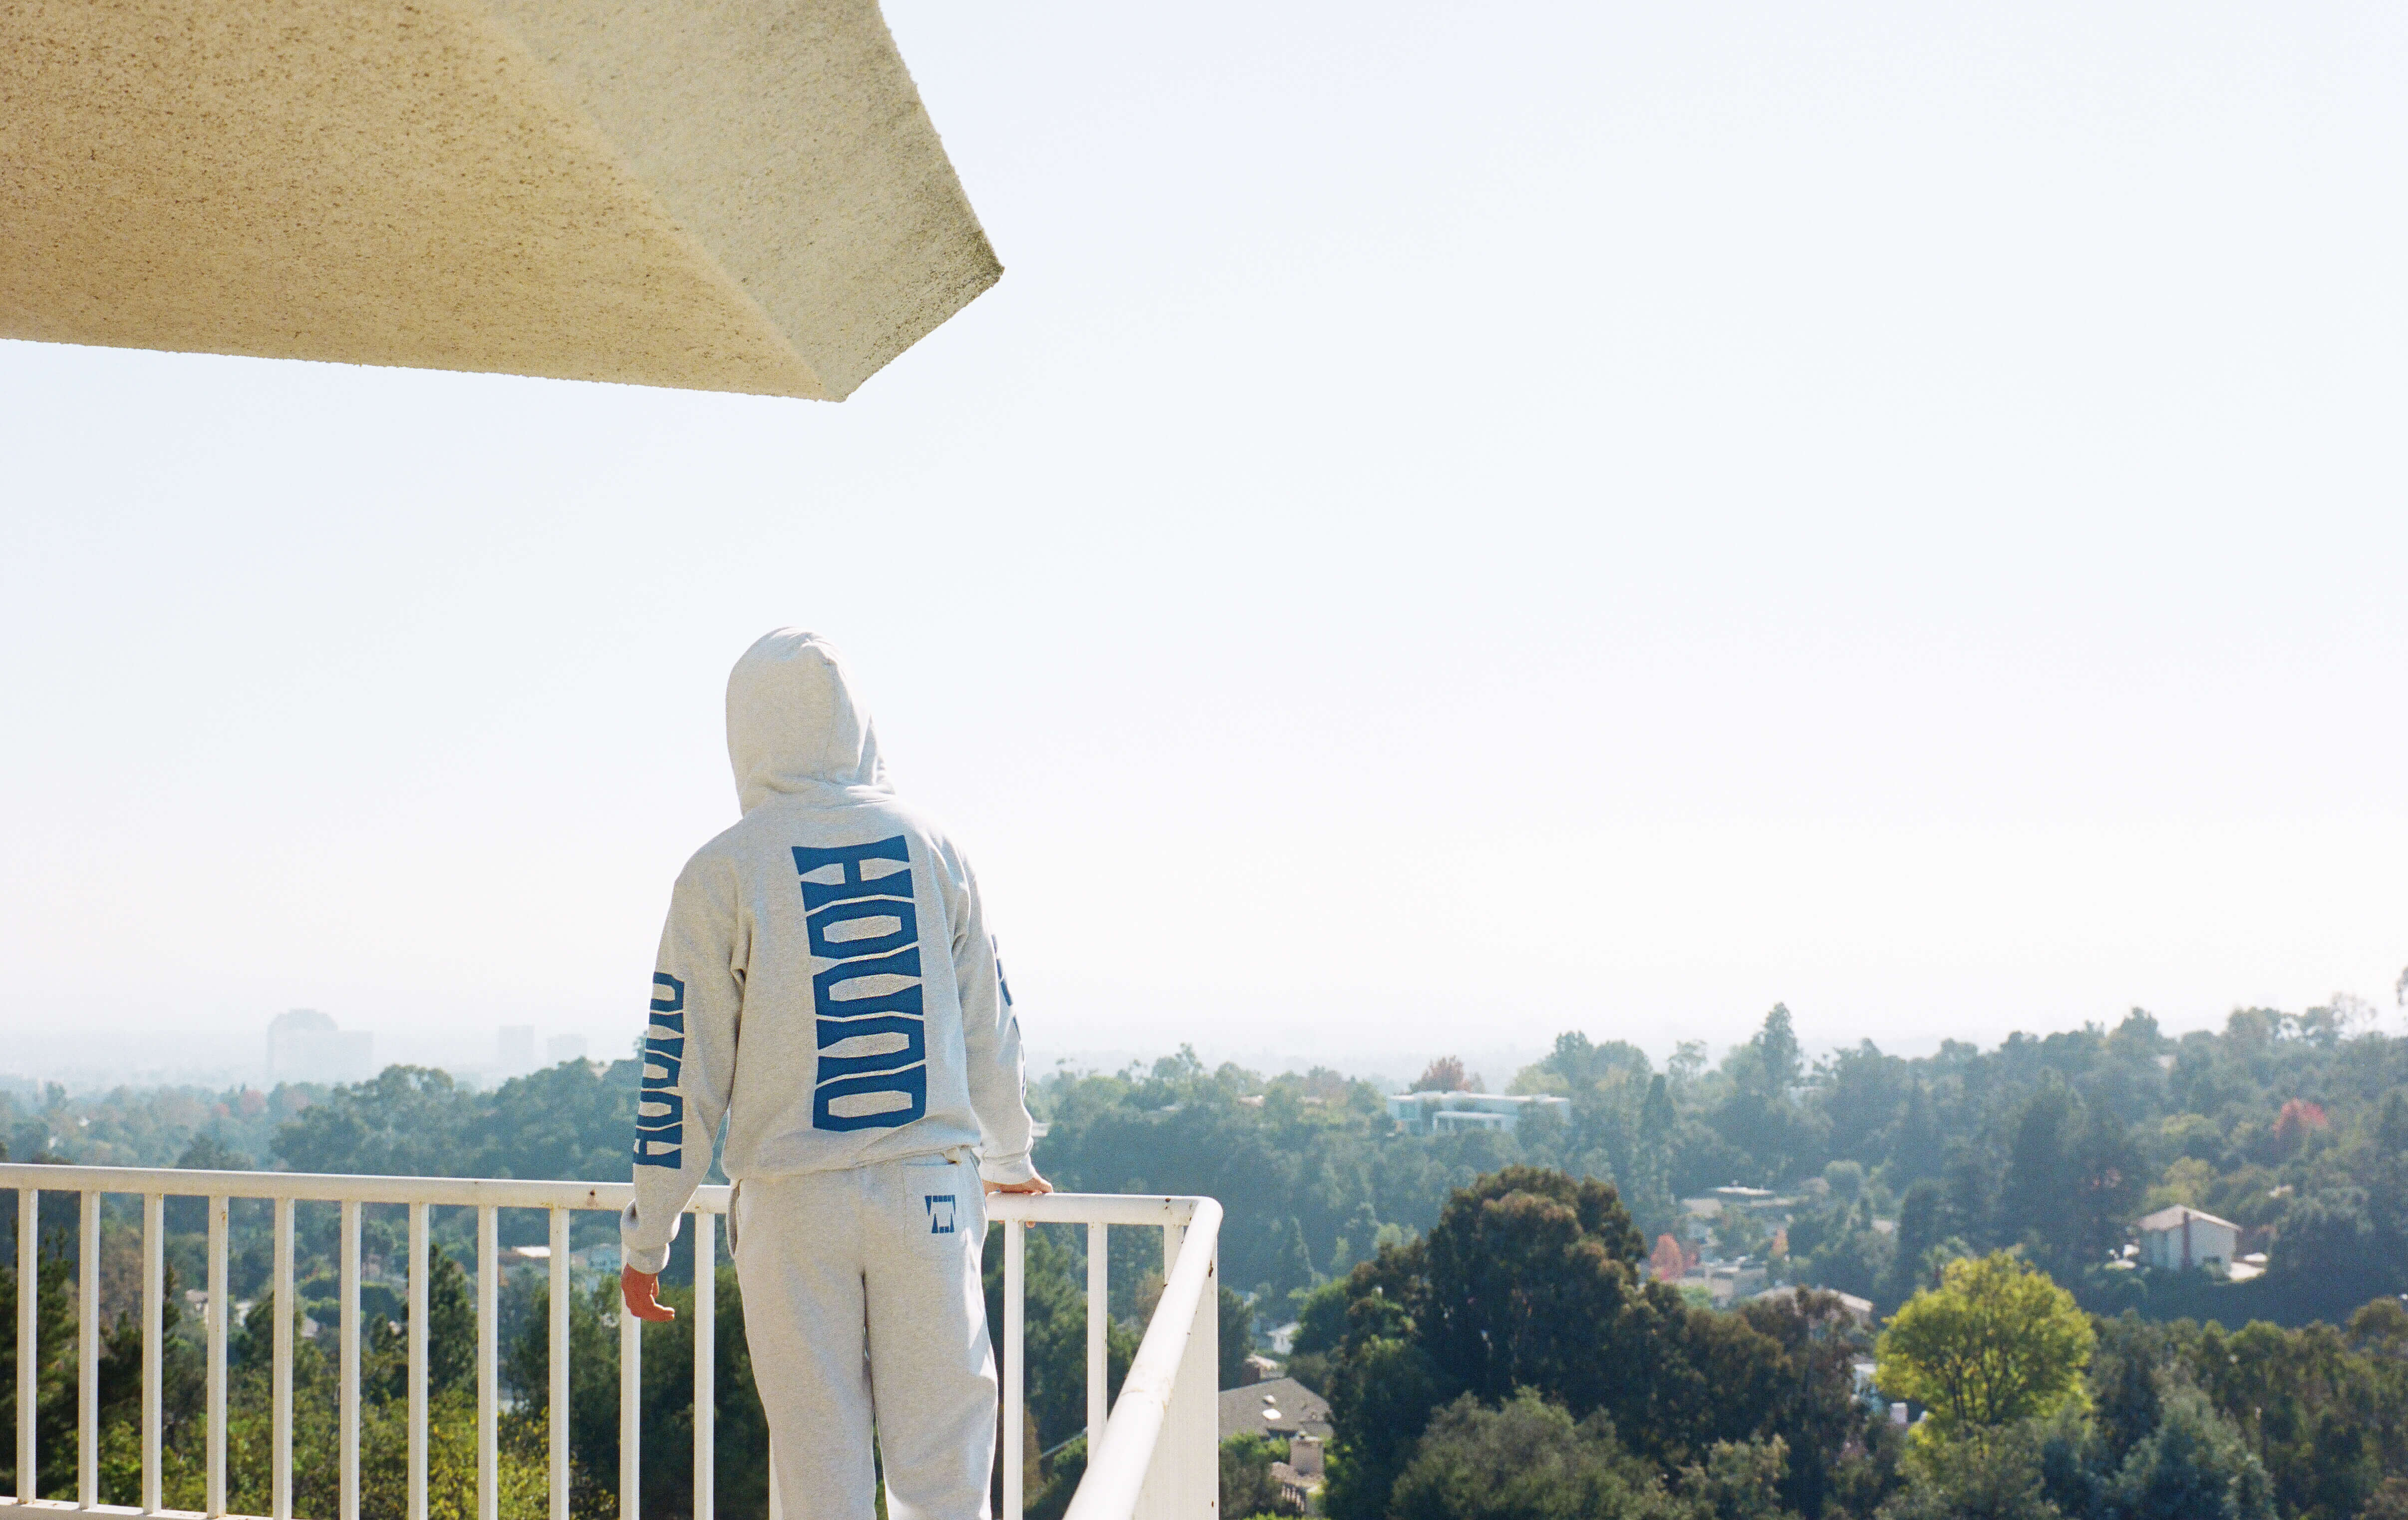 A person wearing a Hound hoodie looks off into the distance from a balcony